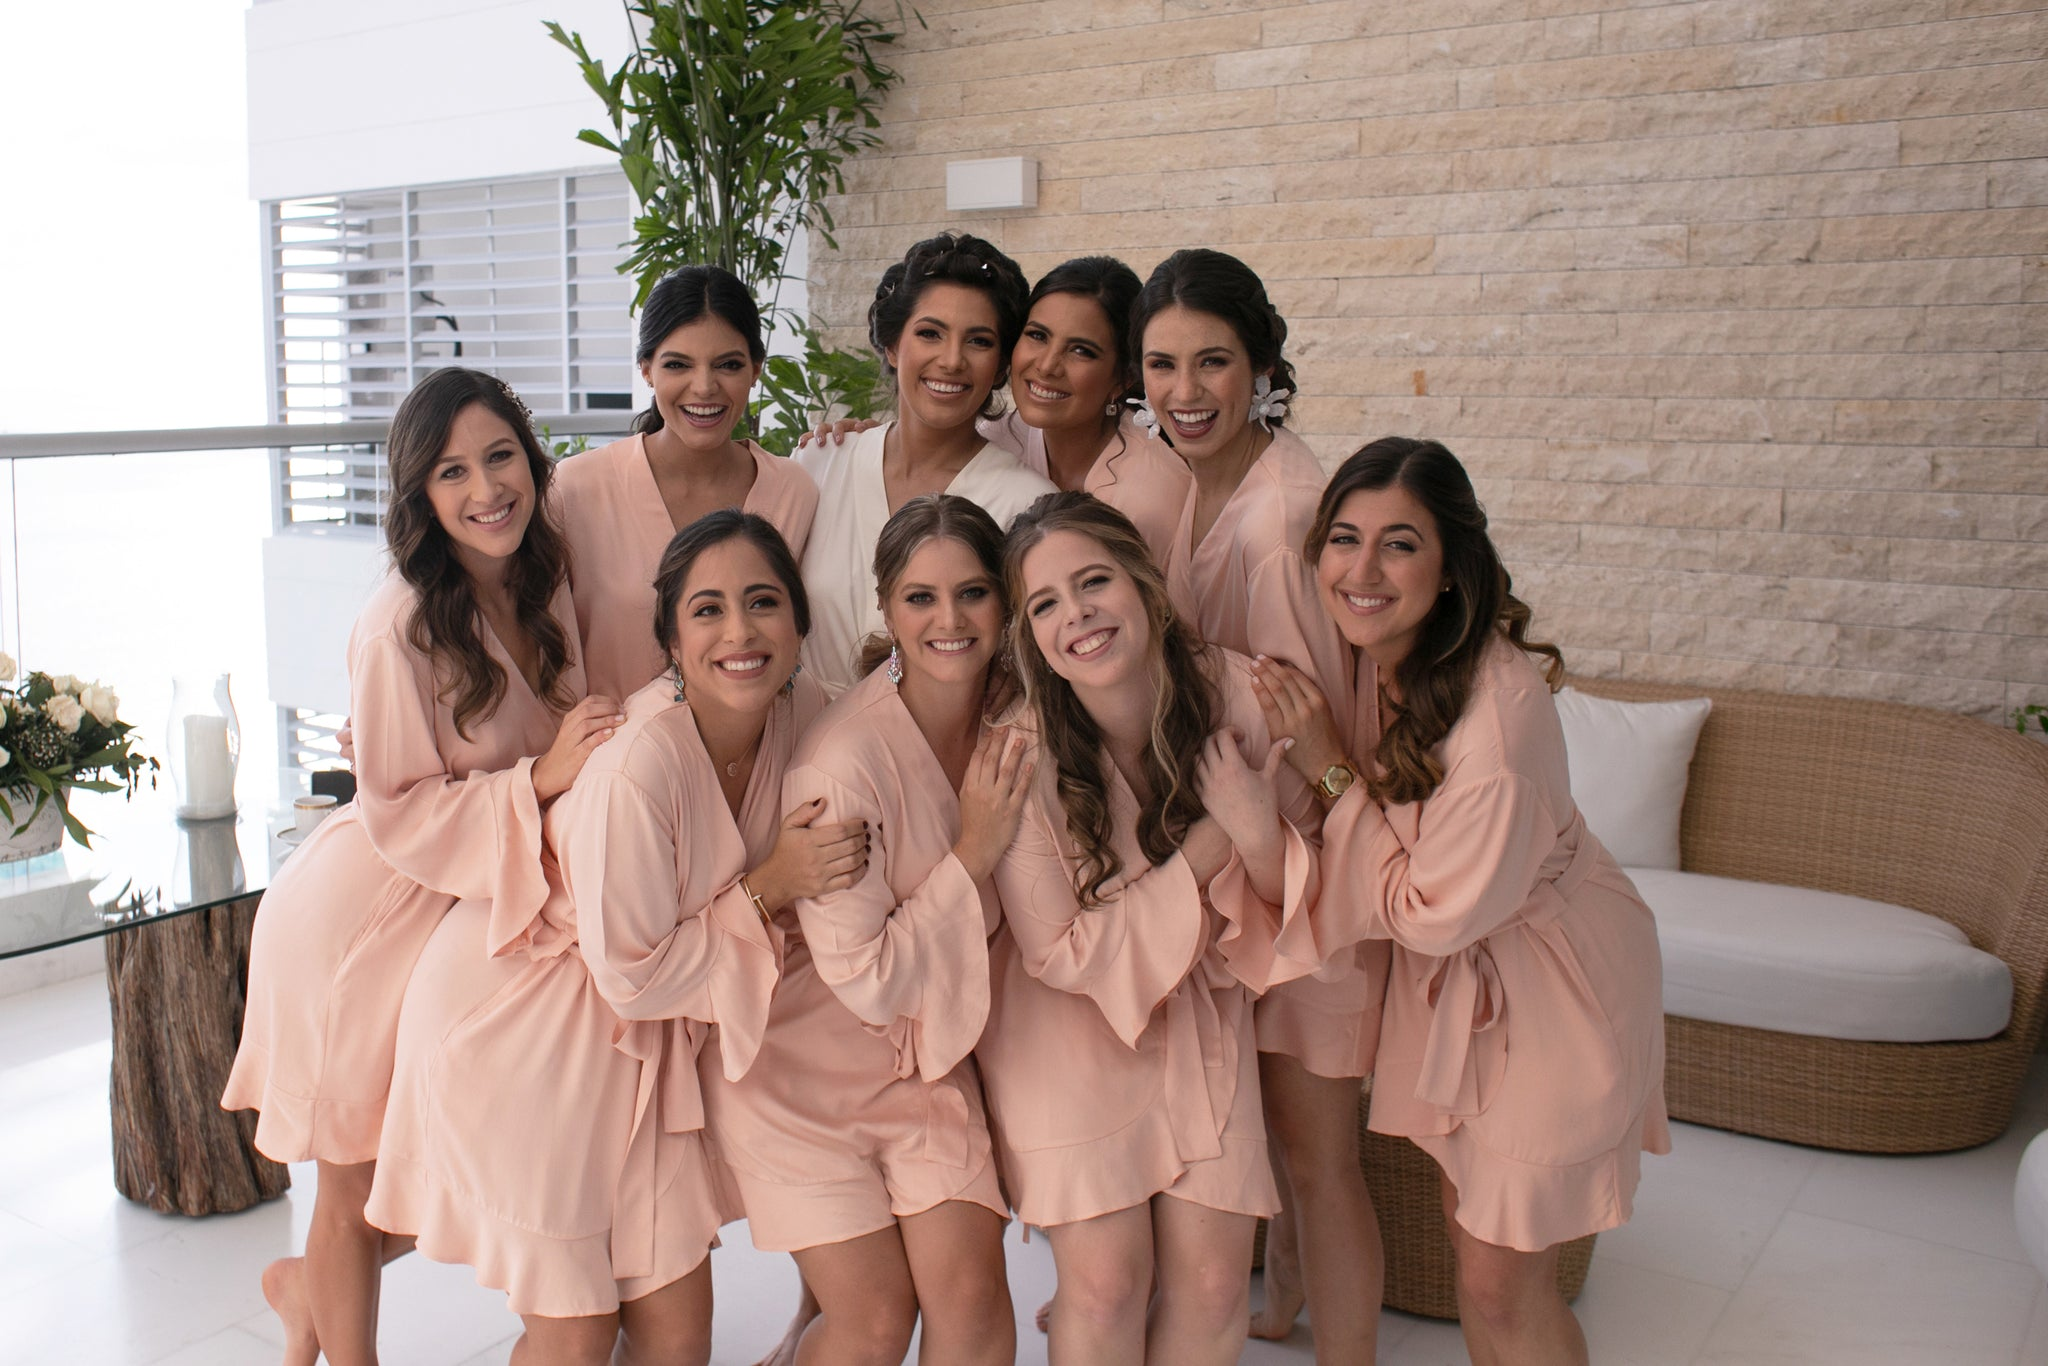 The bride with her bridesmaids in their sustainably made Ruffle Robes by Half Asleep